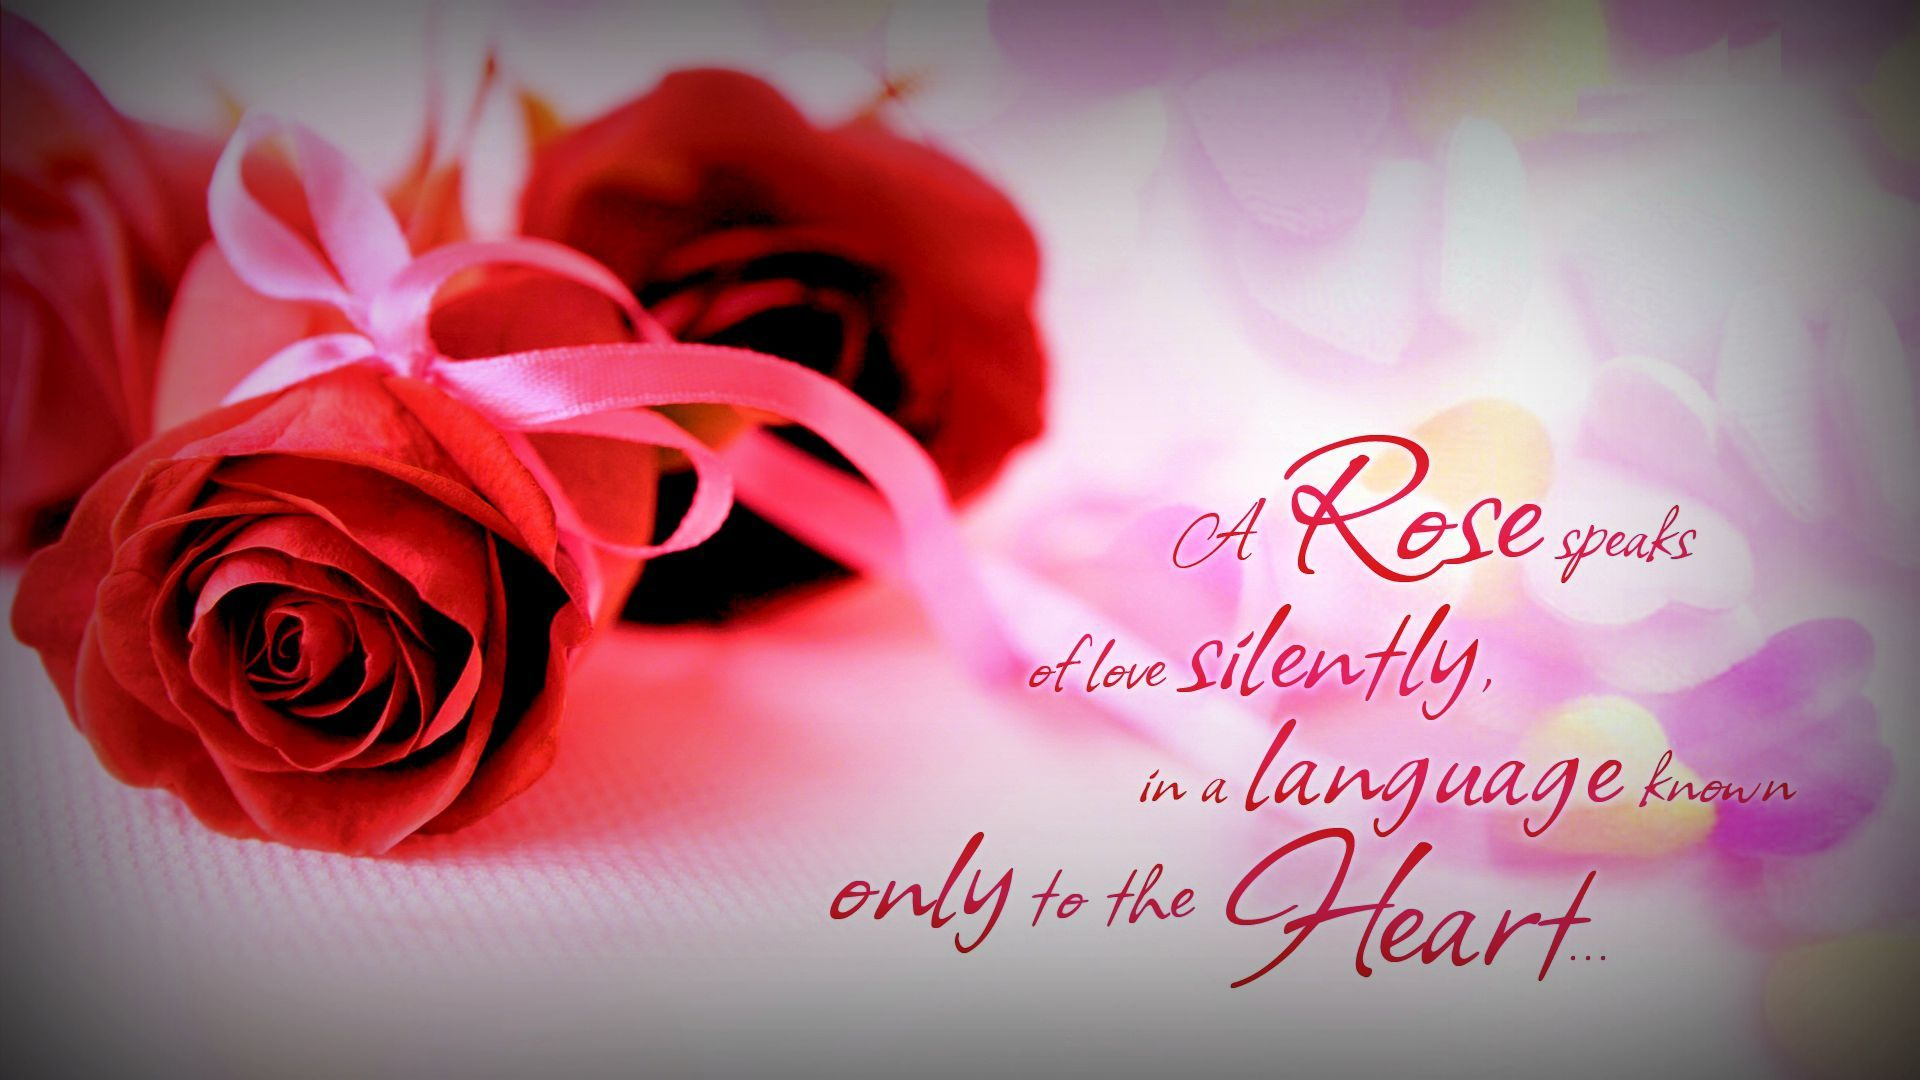 A Rose Speaks Relationships Love Wallpaper Love Quotes